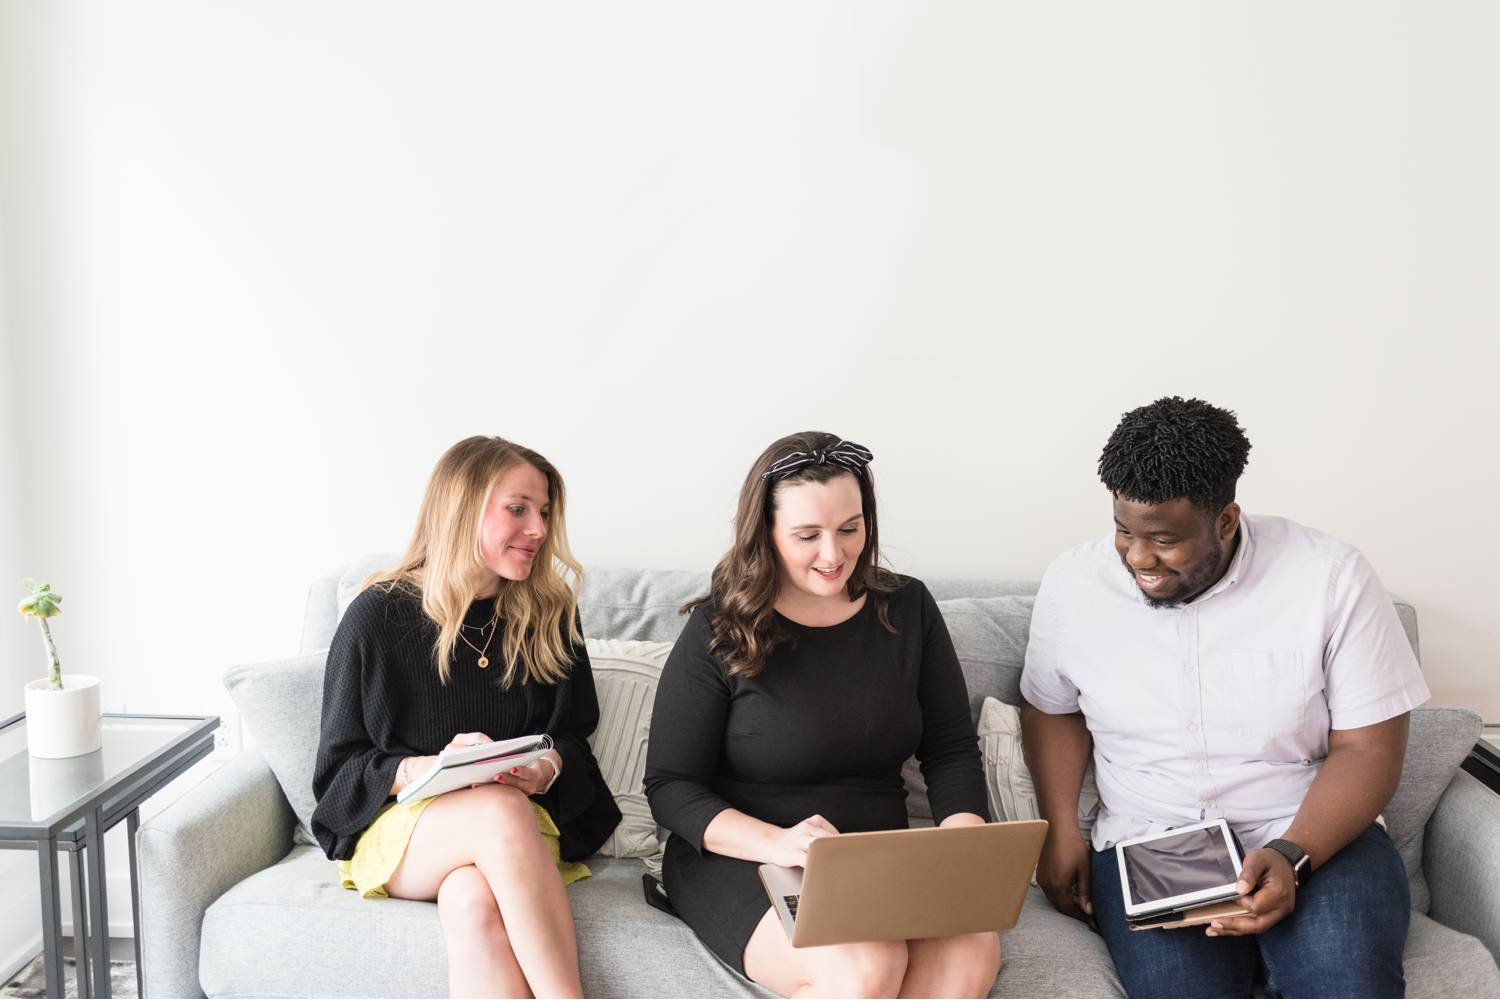 By Mandy Liz: Three adults sit on a sofa smiling and reviewing client feedback on a laptop.